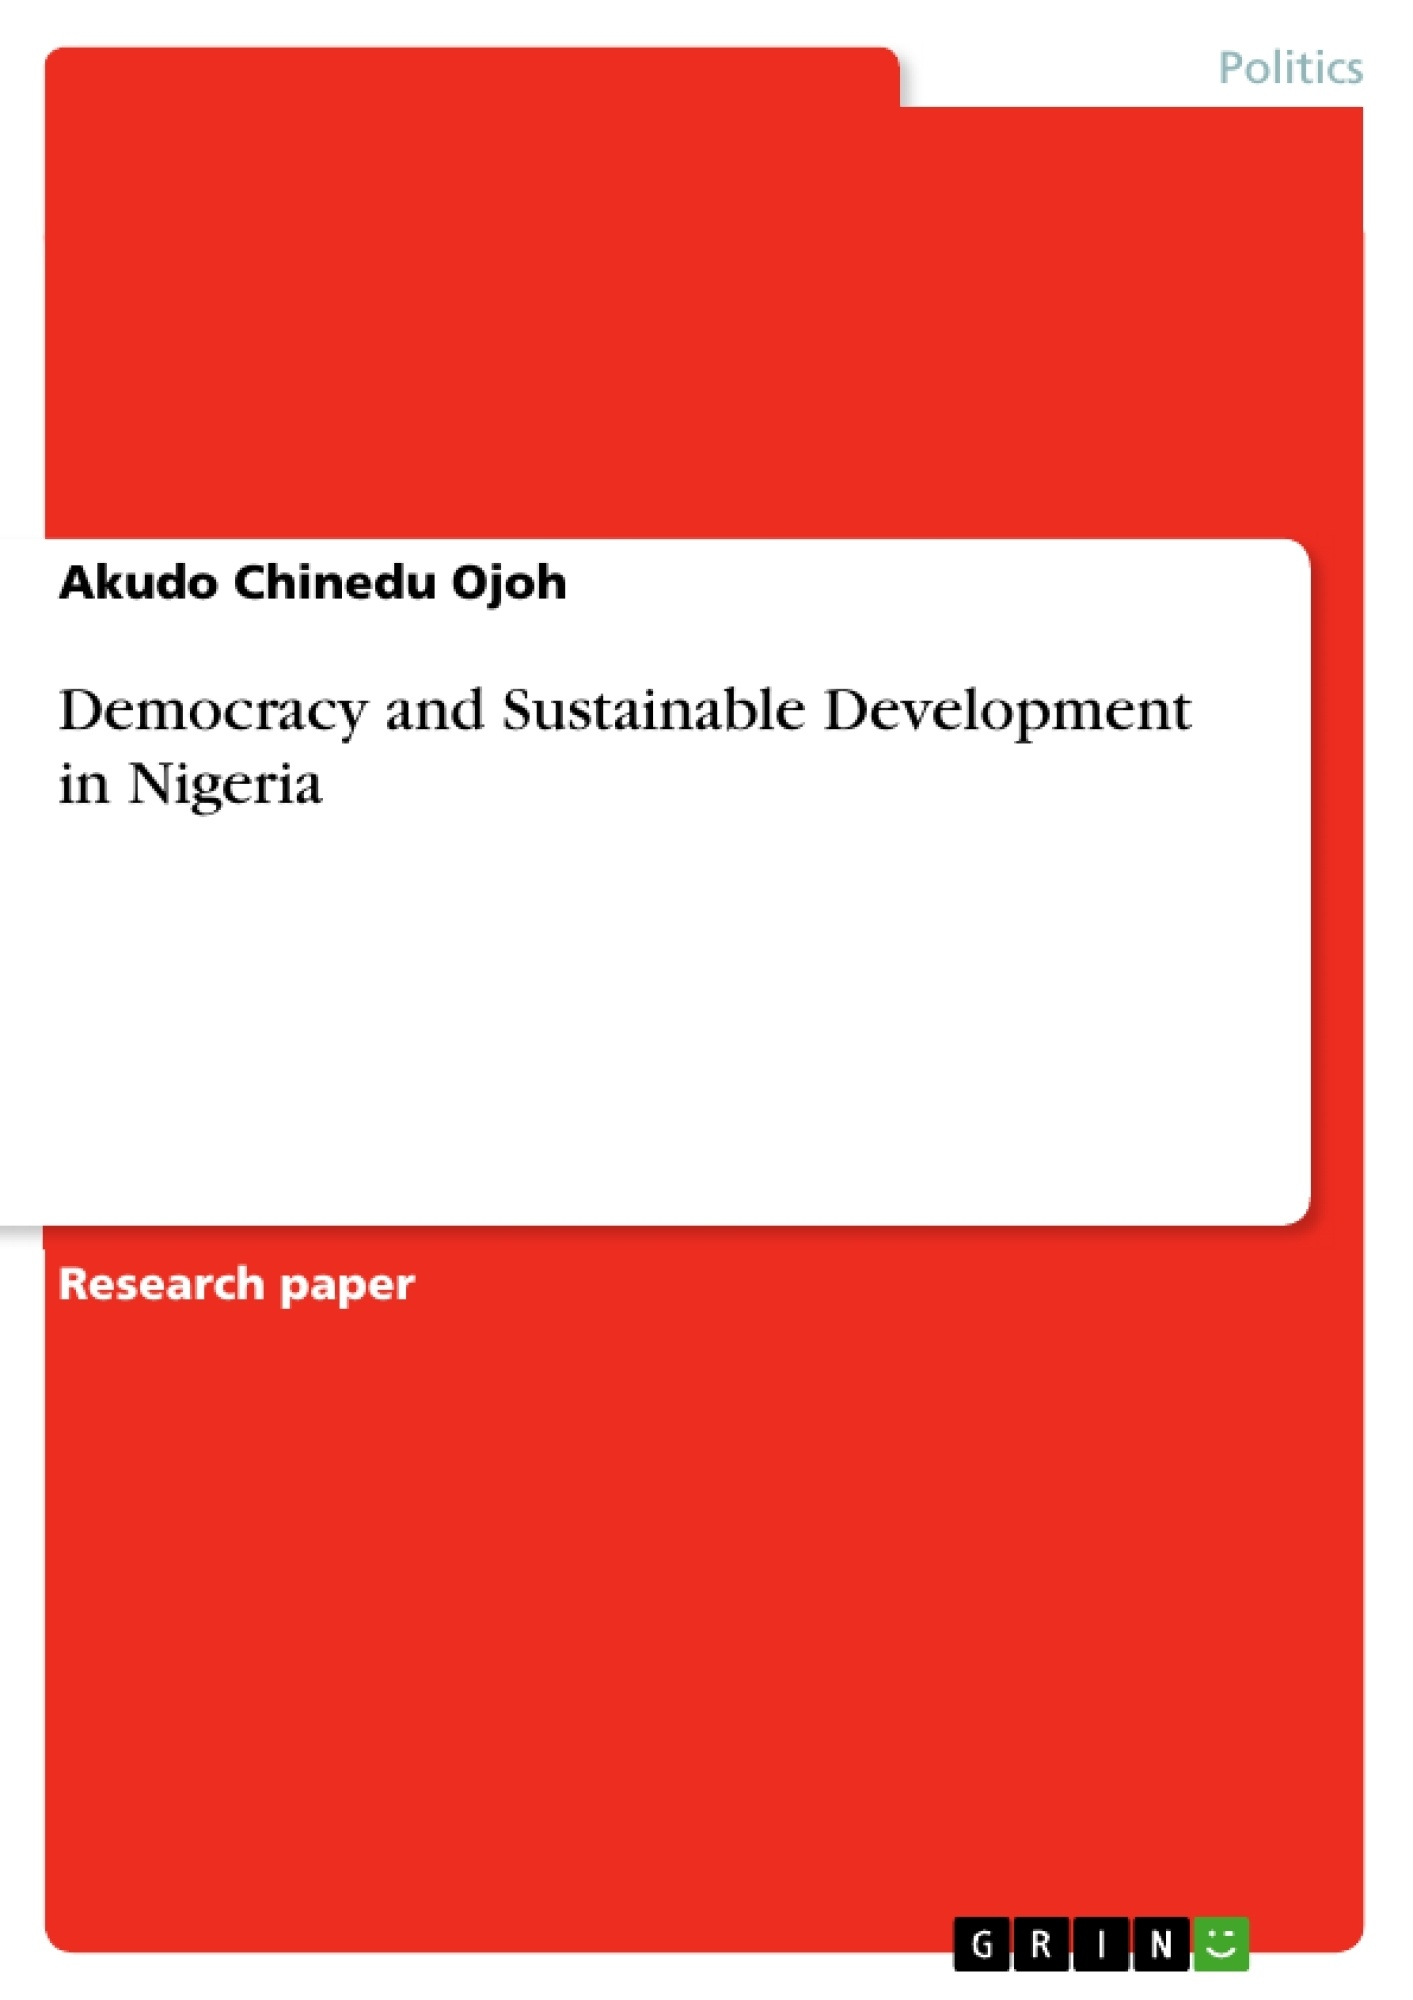 Title: Democracy and Sustainable Development in Nigeria